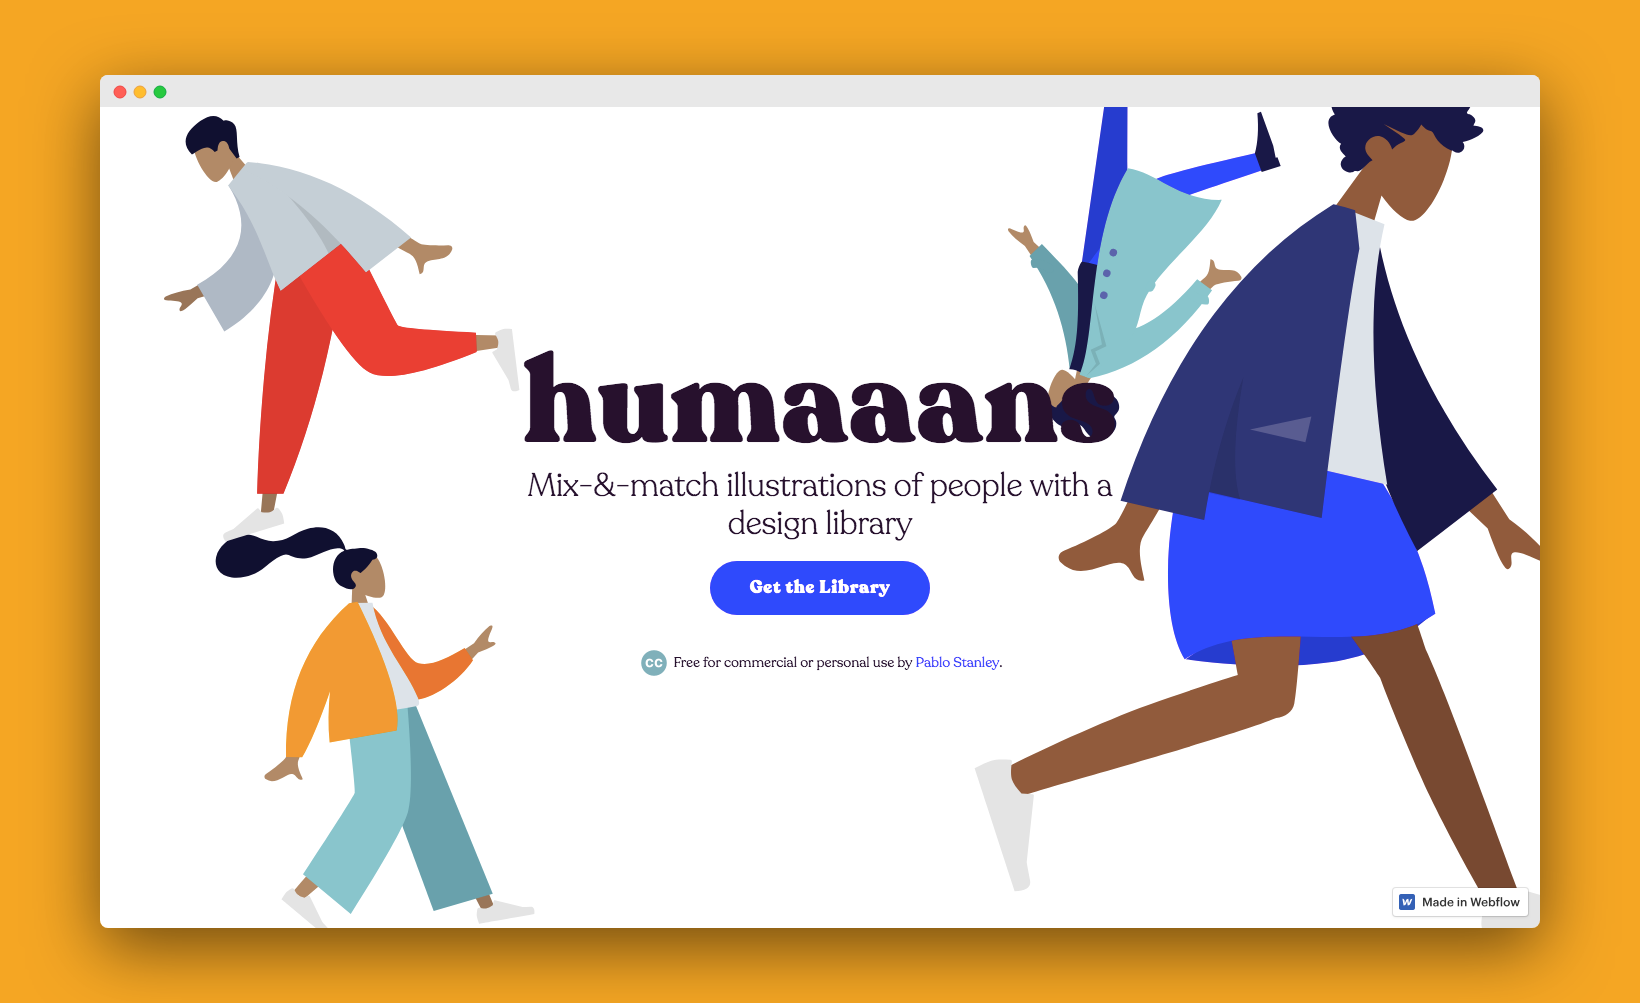 Mix-&-match illustrations of people with a design library